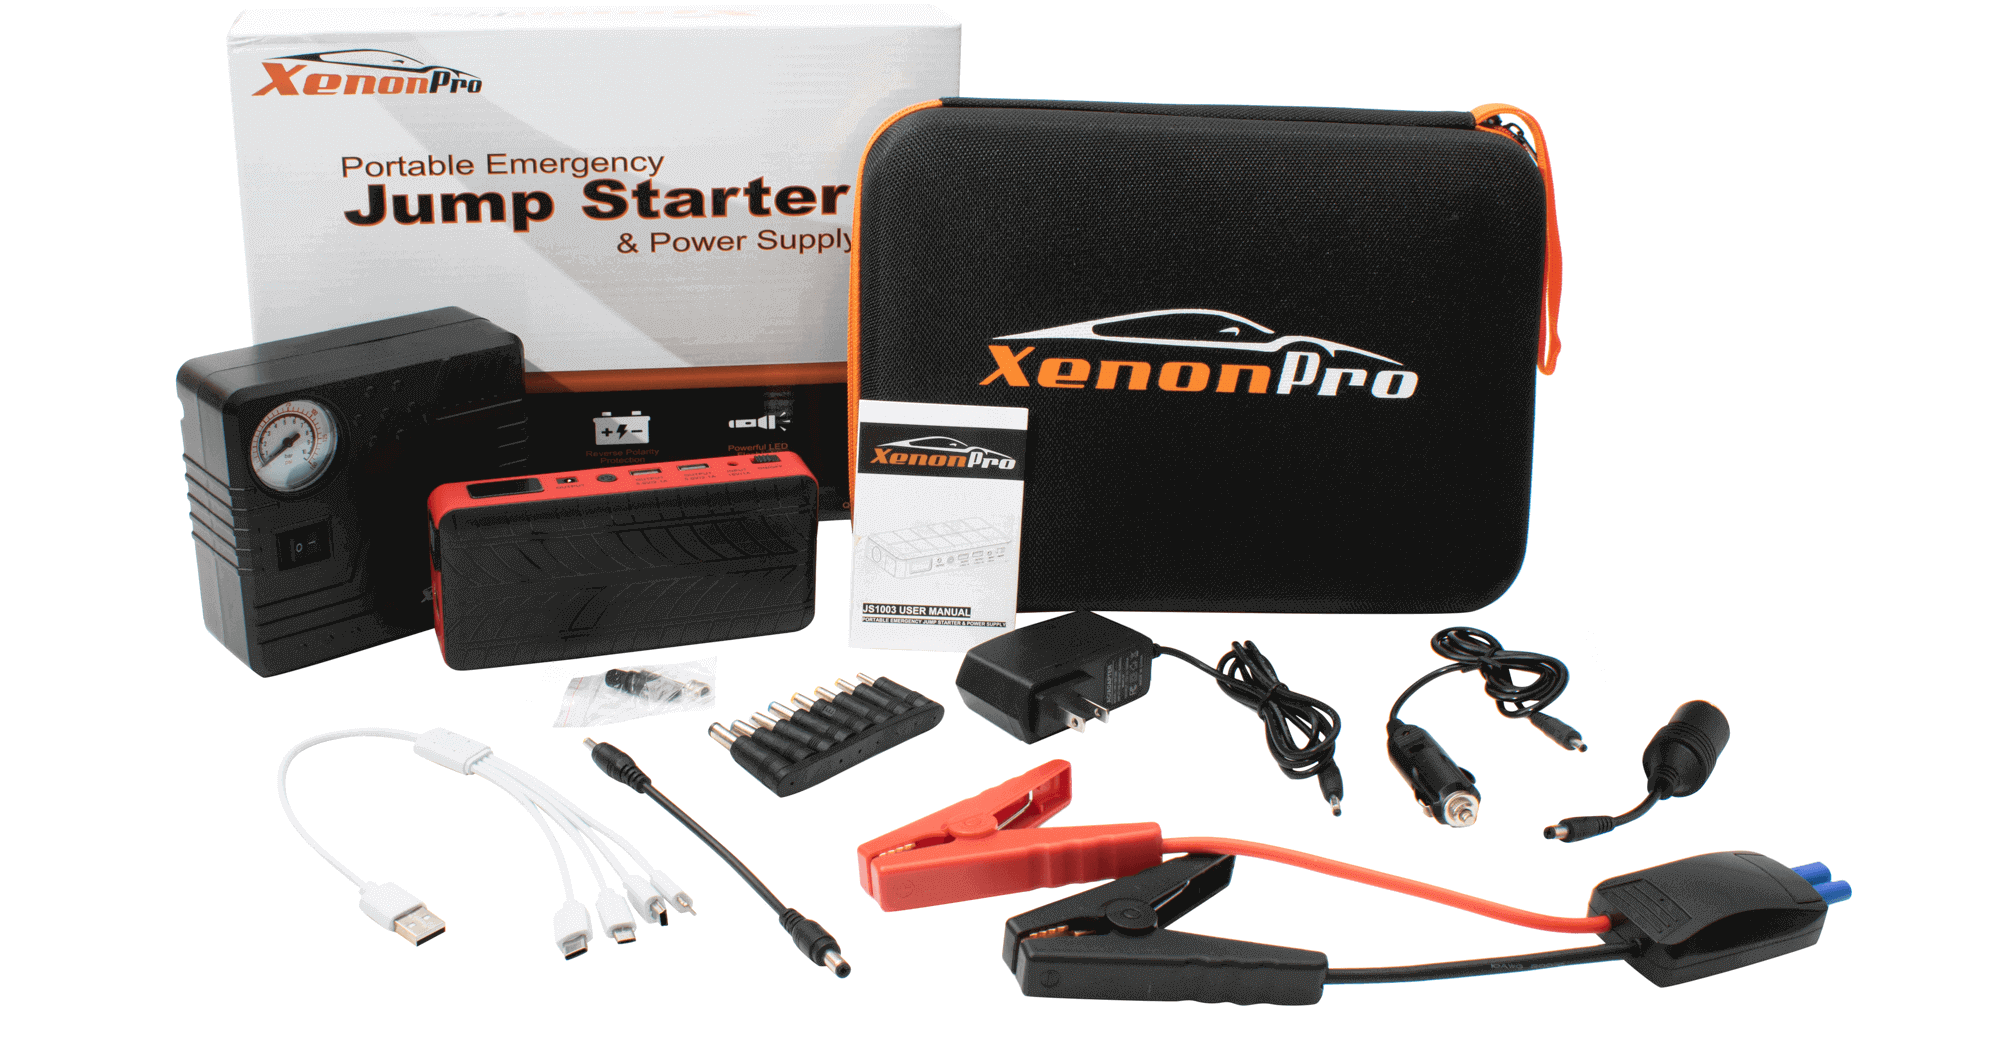 XenonPro.com - JS1003 What's Included